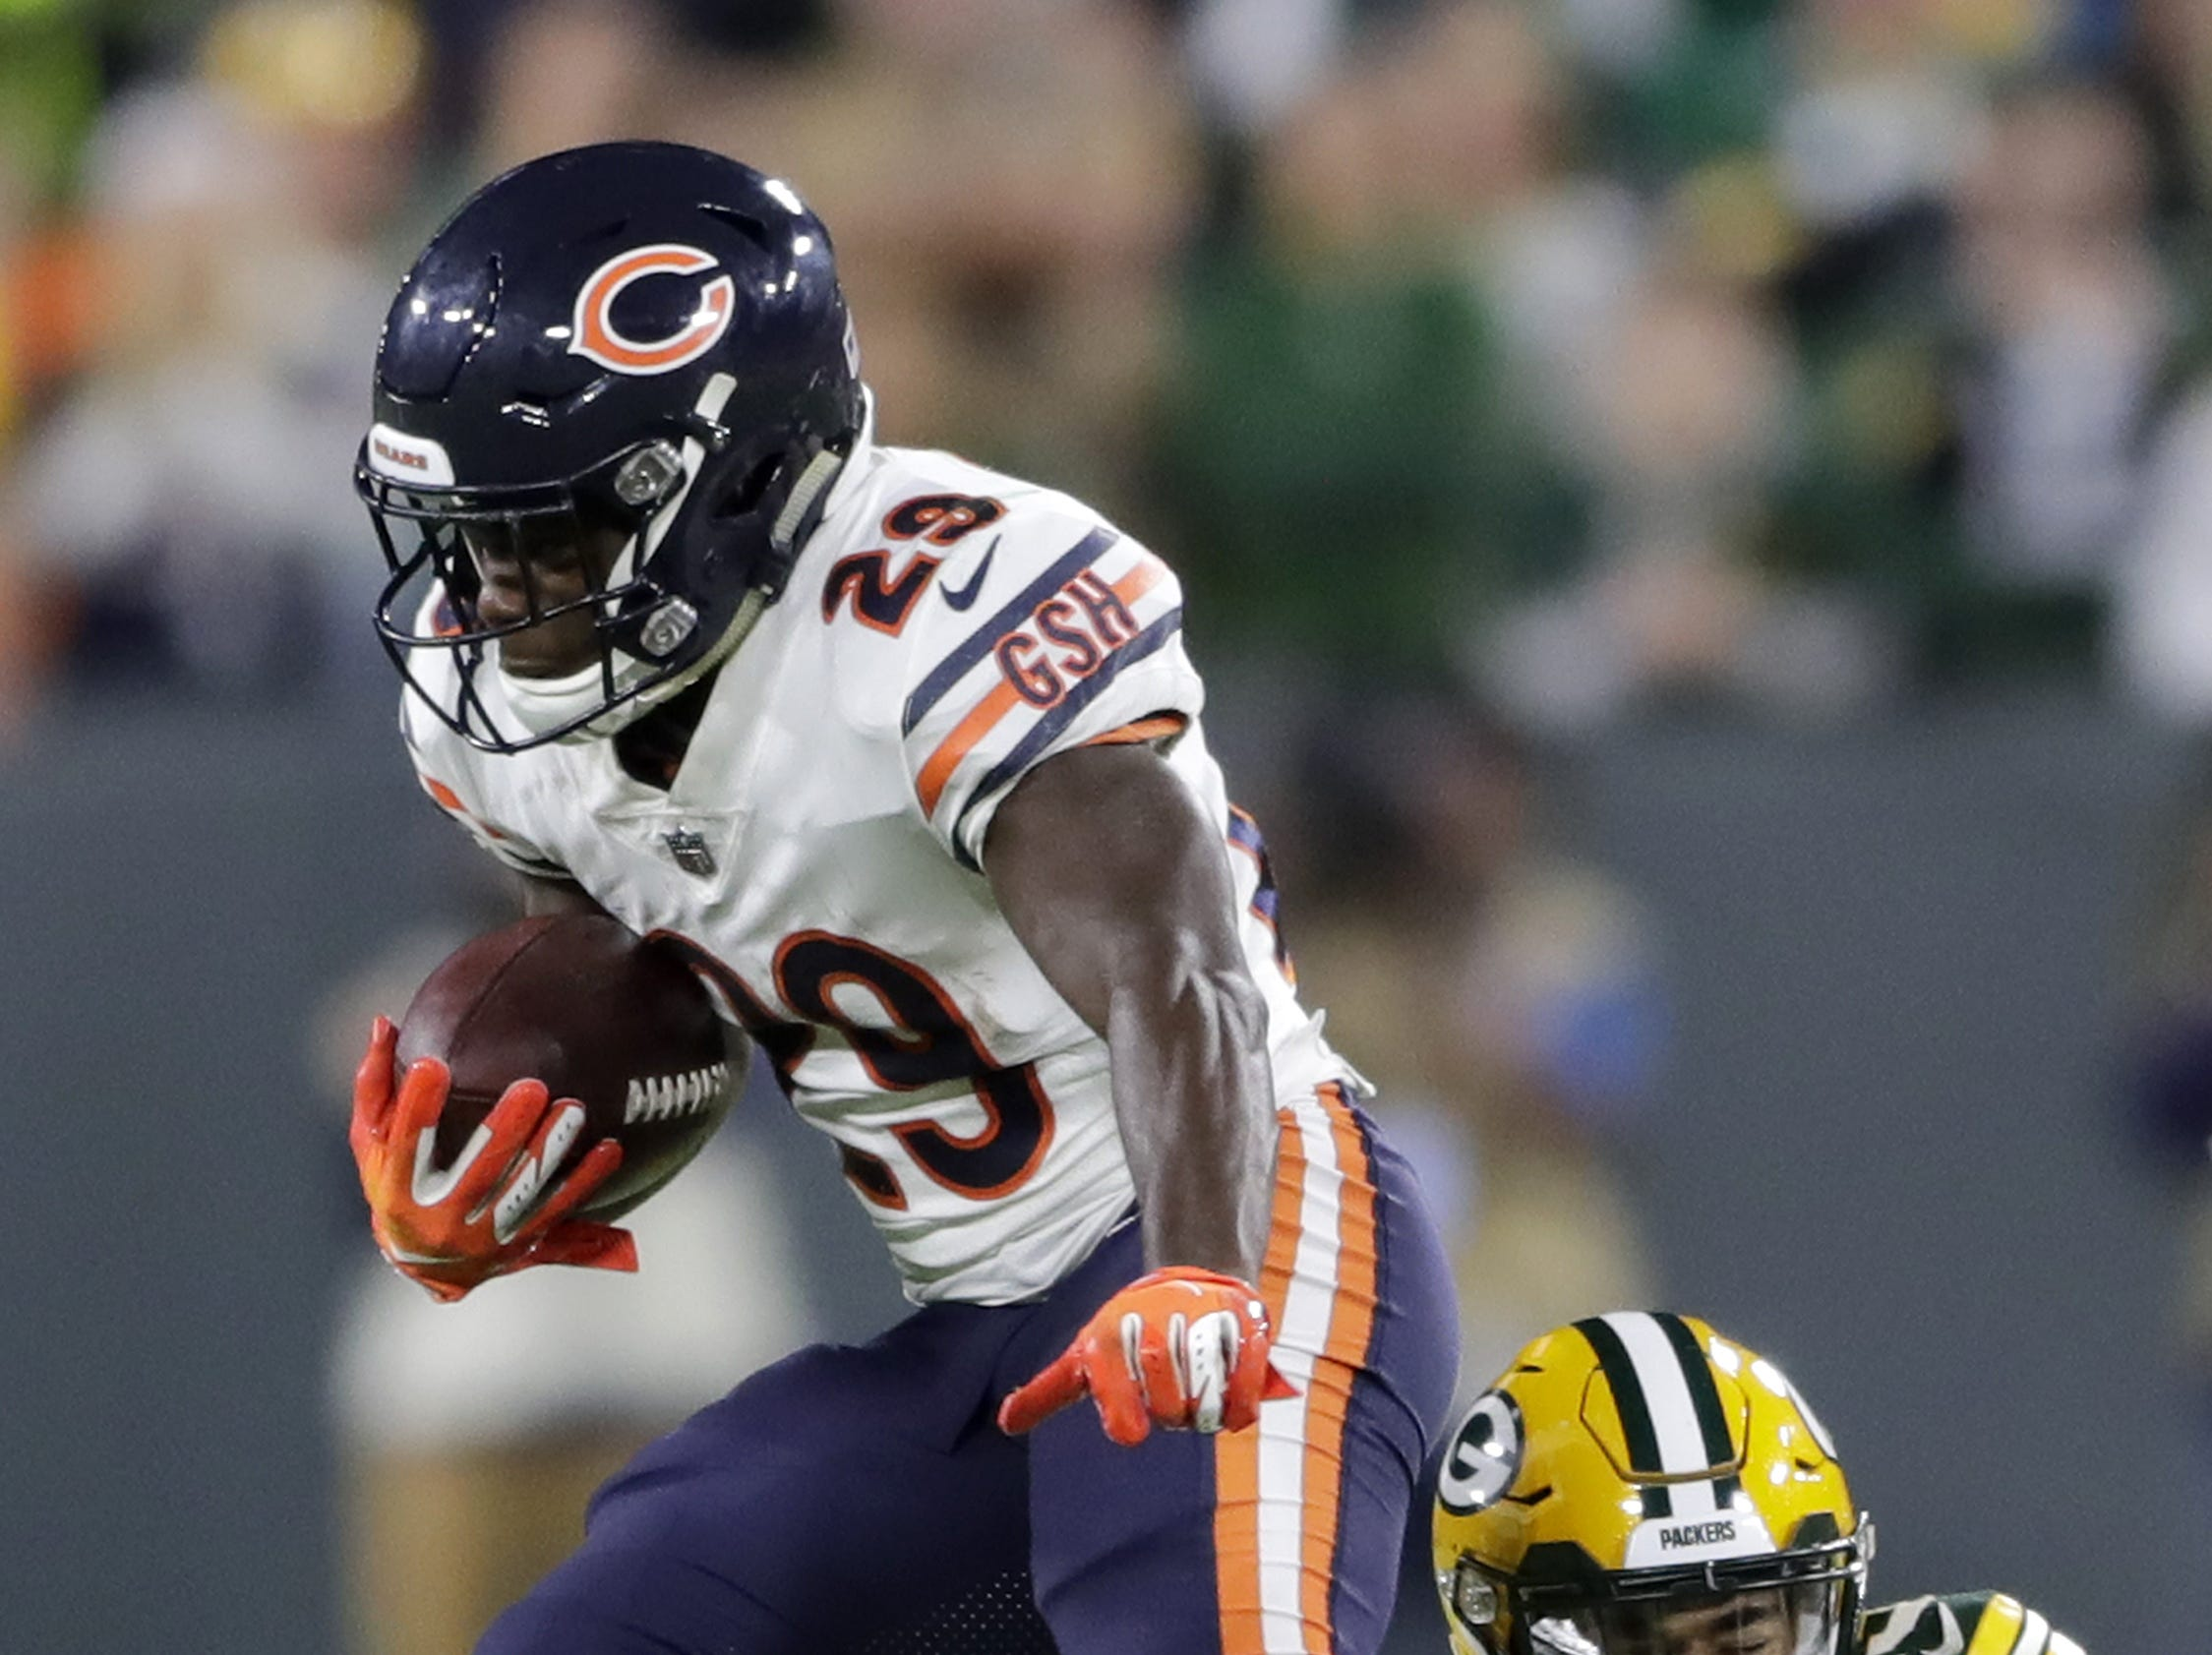 Green Bay Packers cornerback Jaire Alexander (23) tackles Chicago Bears running back Tarik Cohen (29) in the fourth quarter at Lambeau Field on Sunday, September 9, 2018 in Green Bay, Wis.